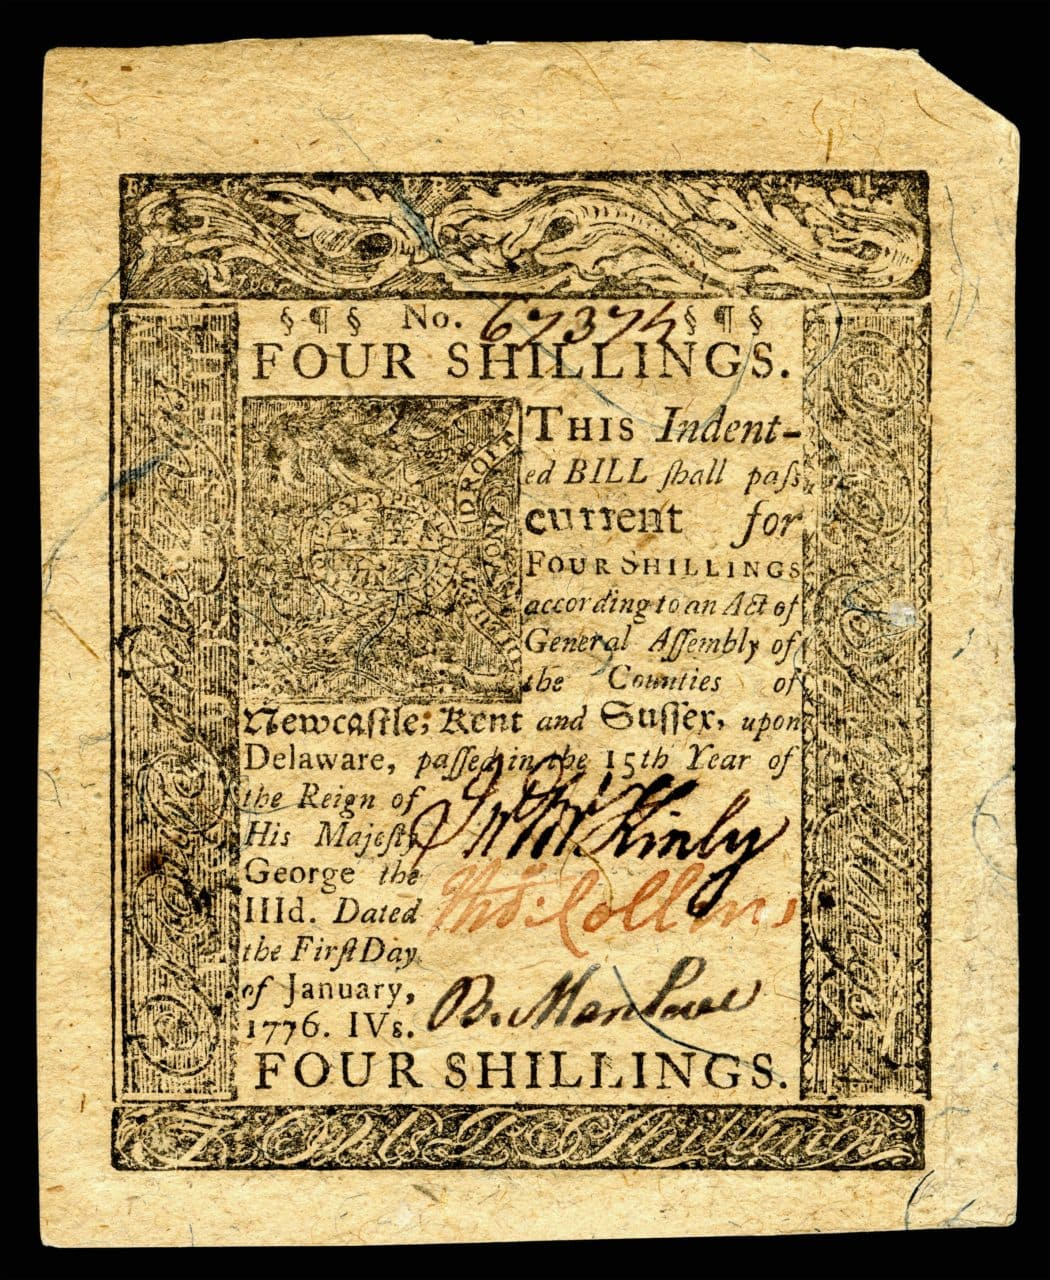 4-shilling banknote issued in 1776 by Delaware Colony